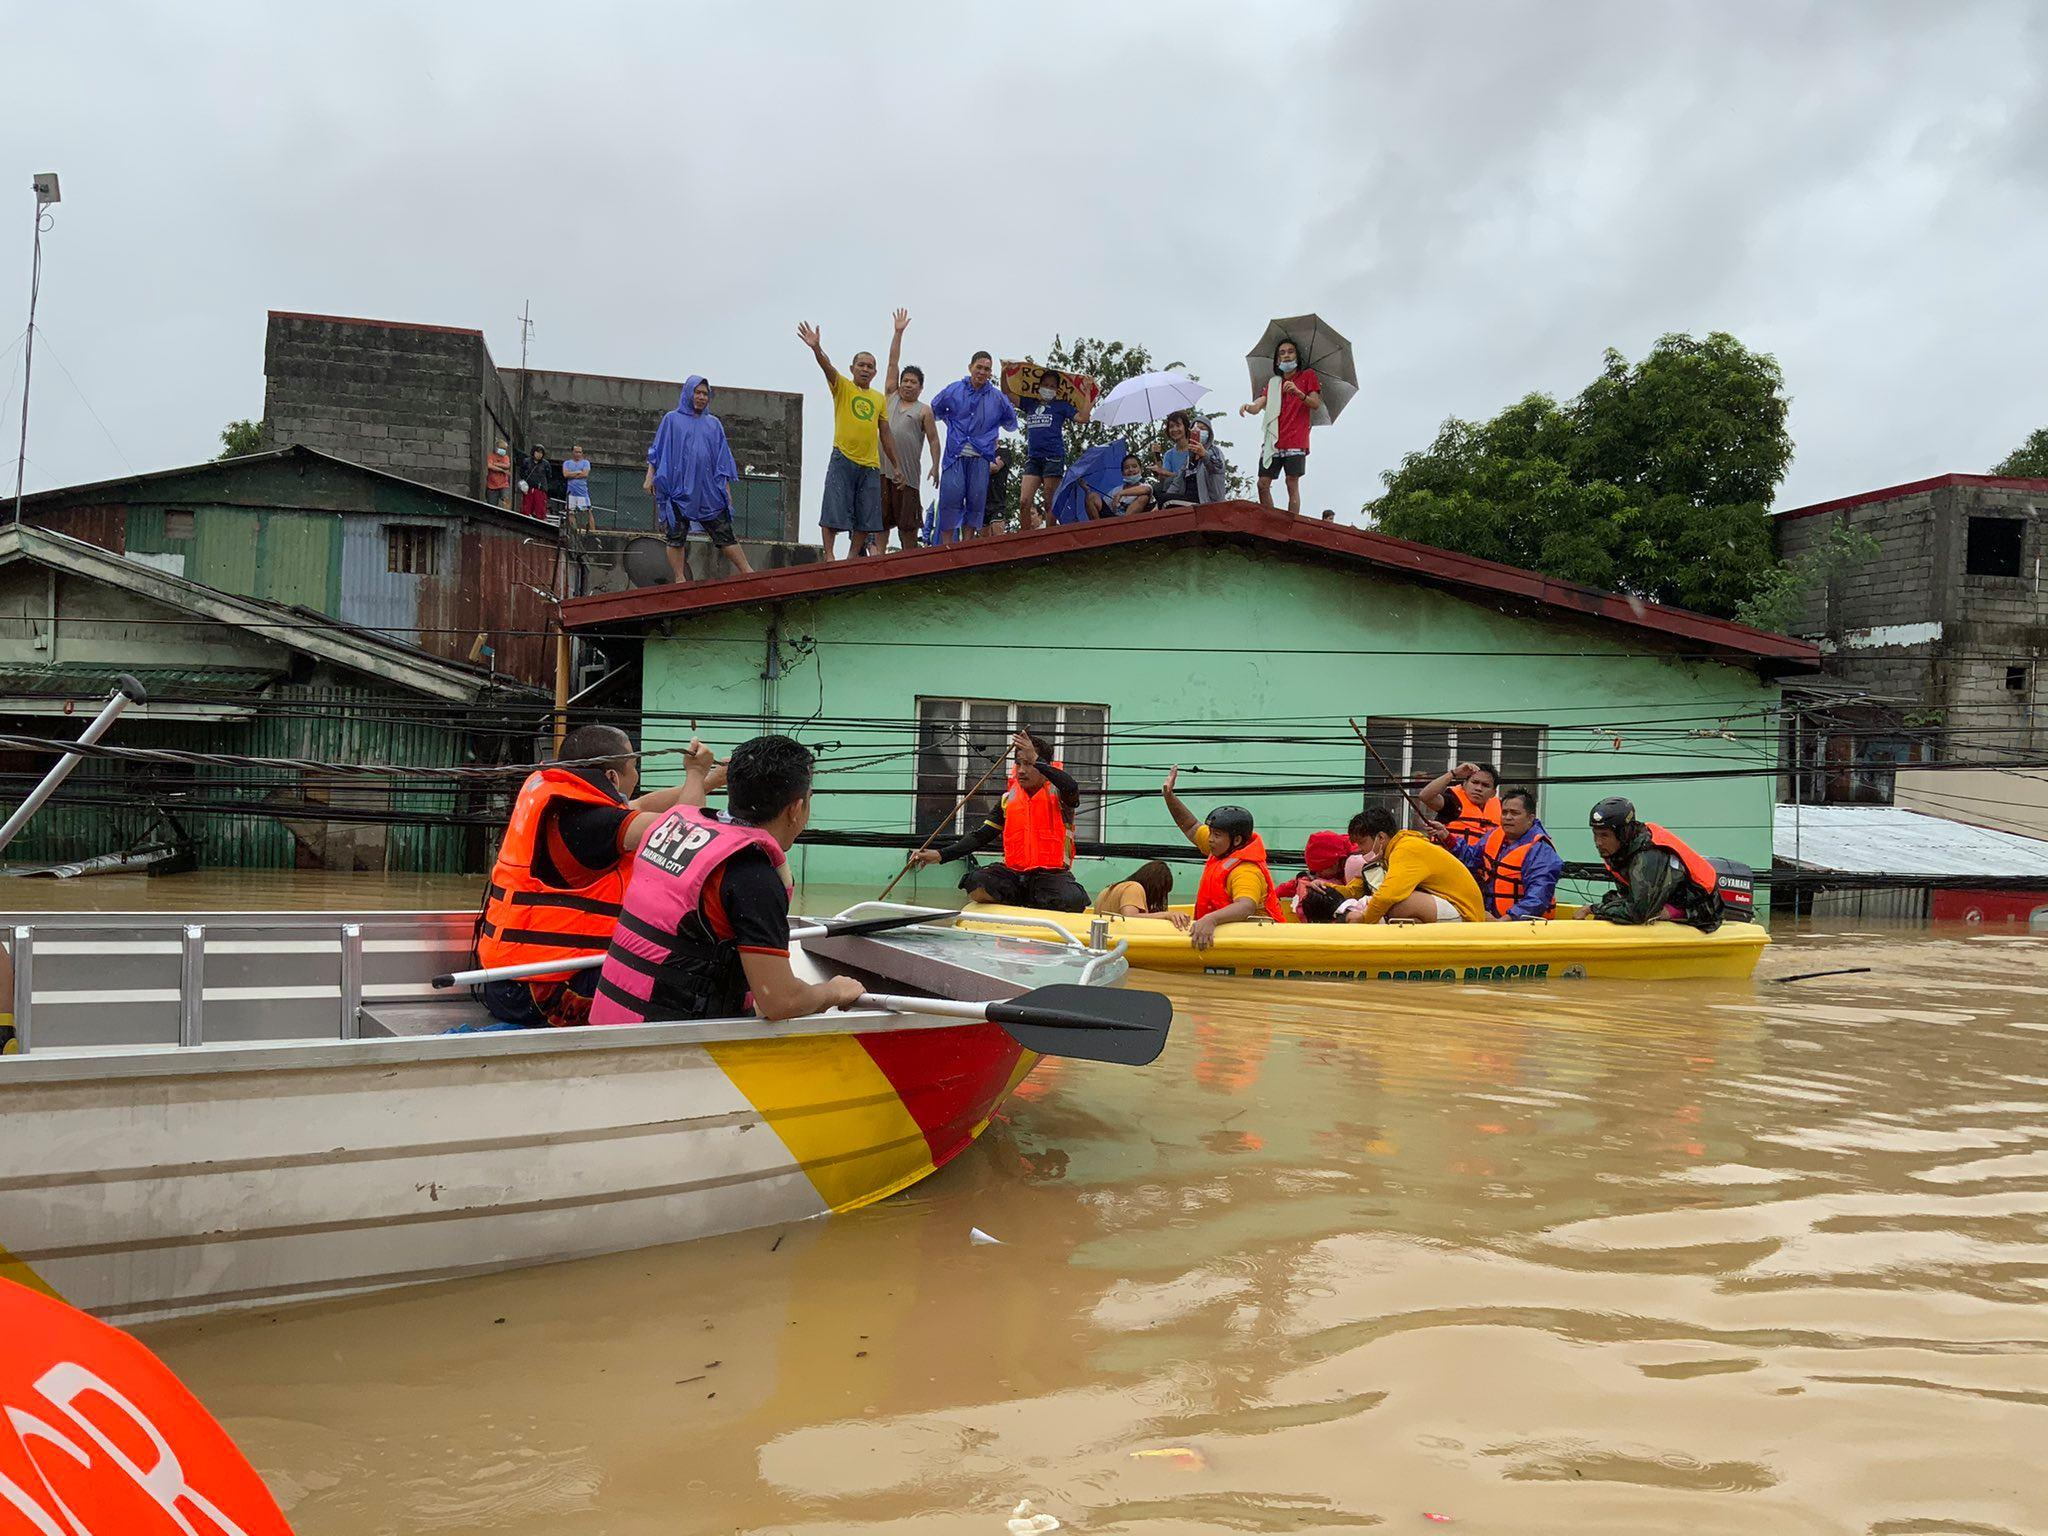 Flooding in low-lying areas worsened by subdivisions —DOST exec